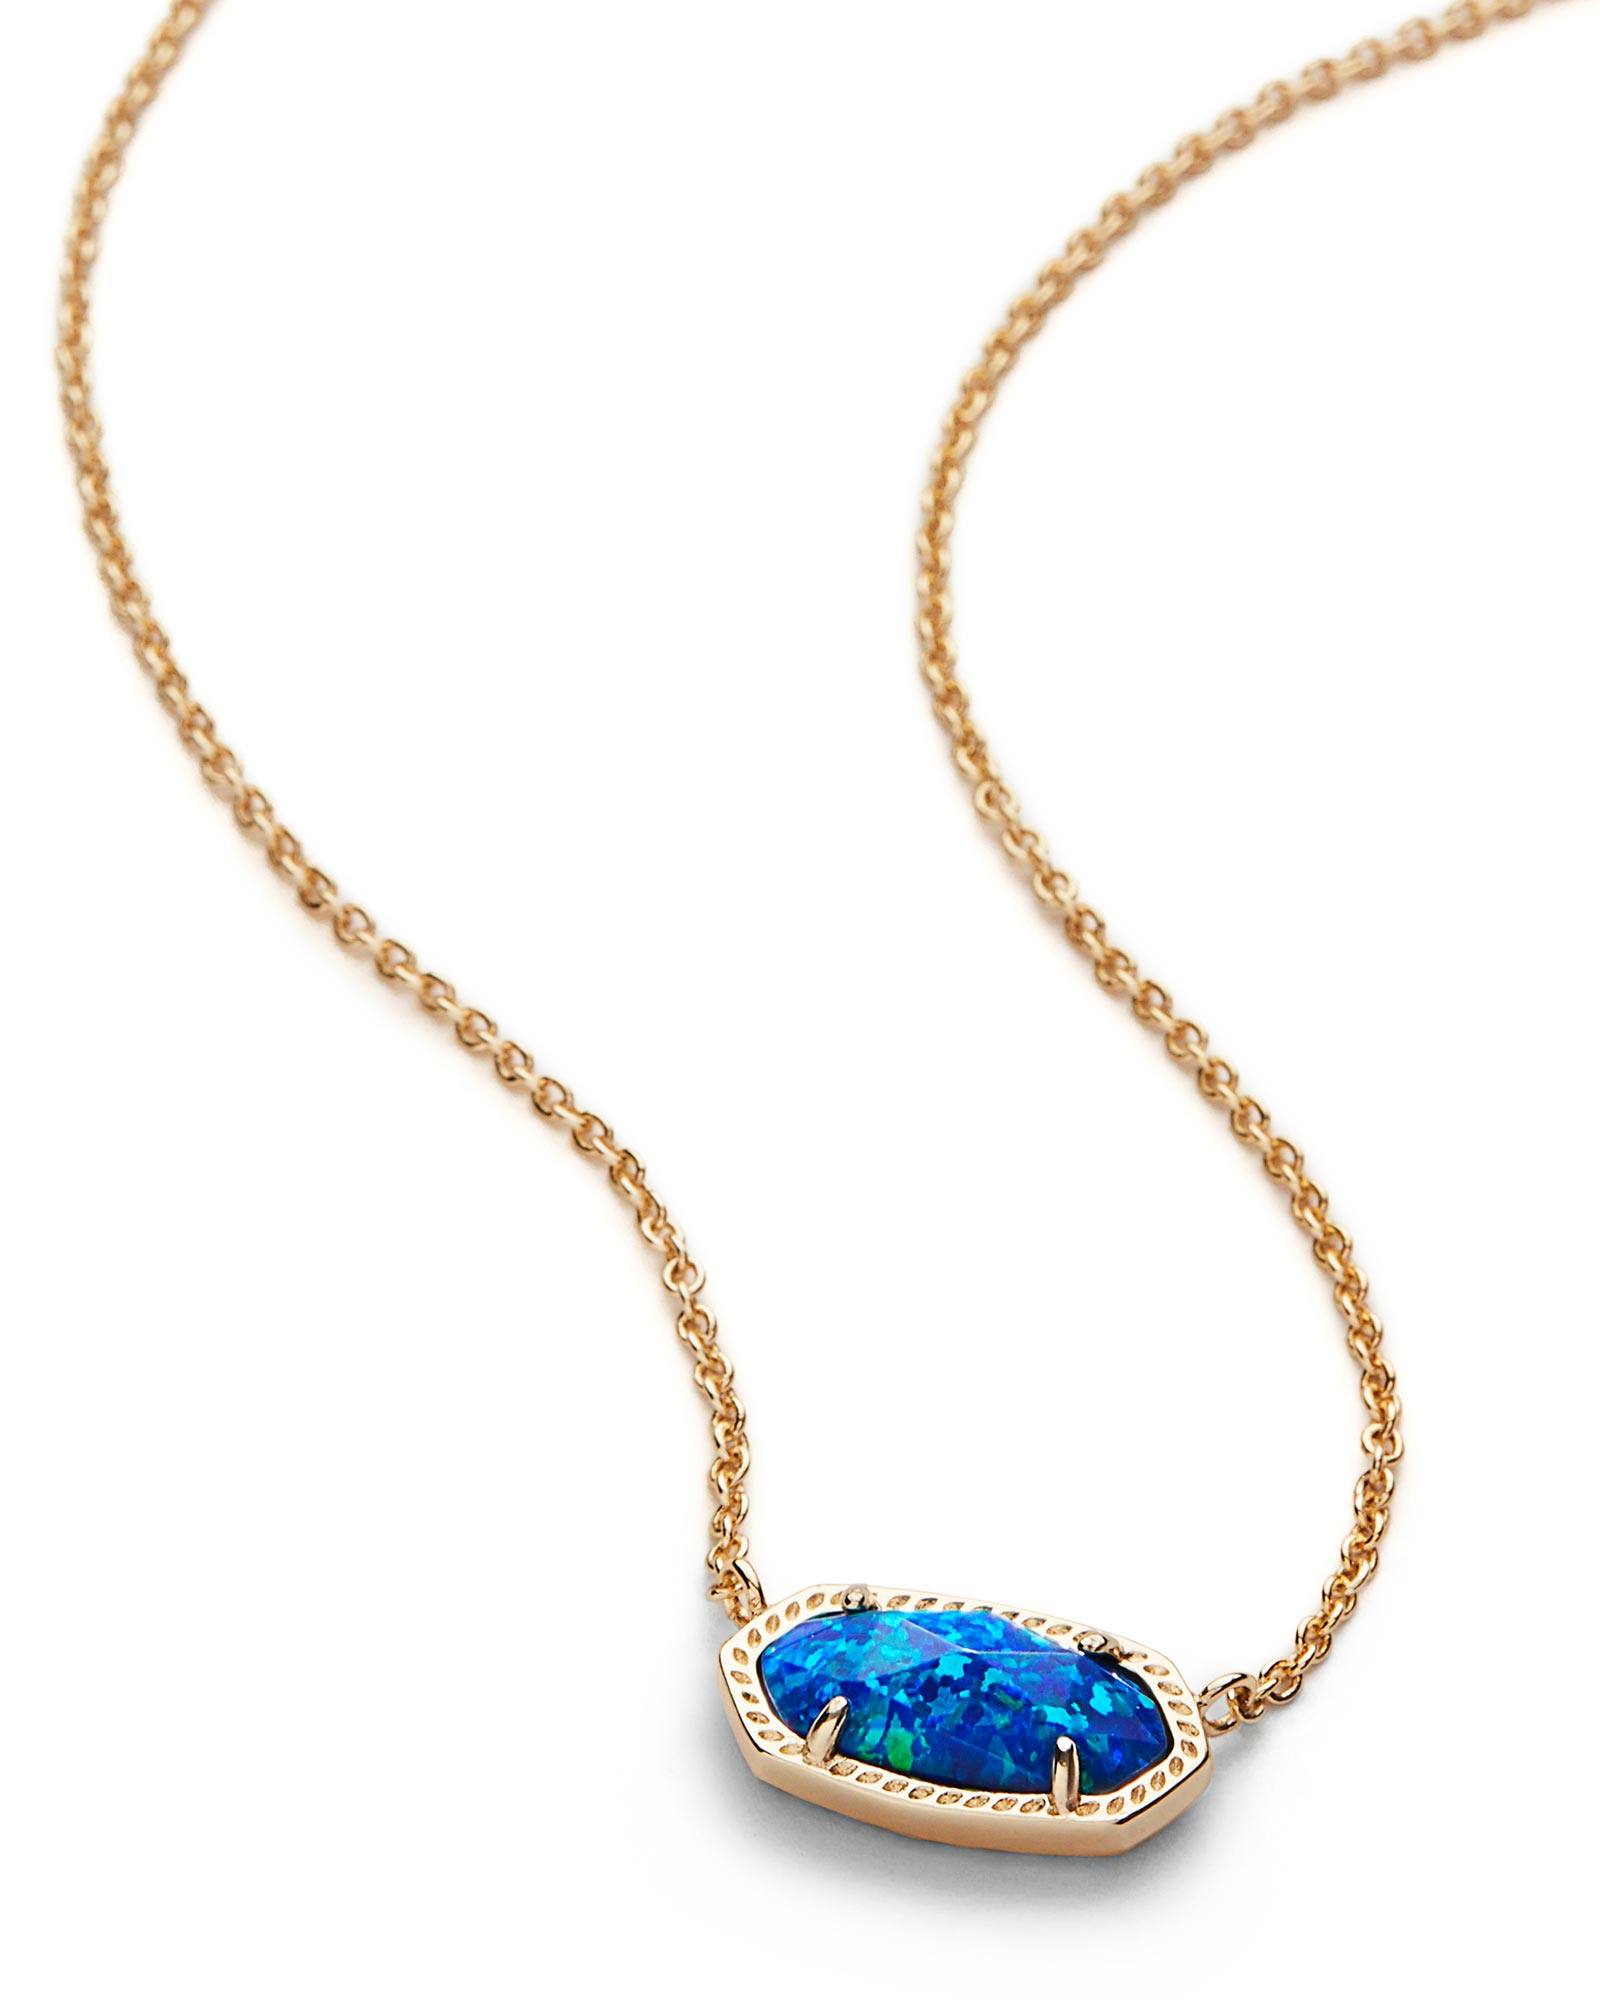 Elisa gold pendant necklace royal blue opal kendra scott elisa pendant necklace in royal blue kyocera opal mozeypictures Choice Image